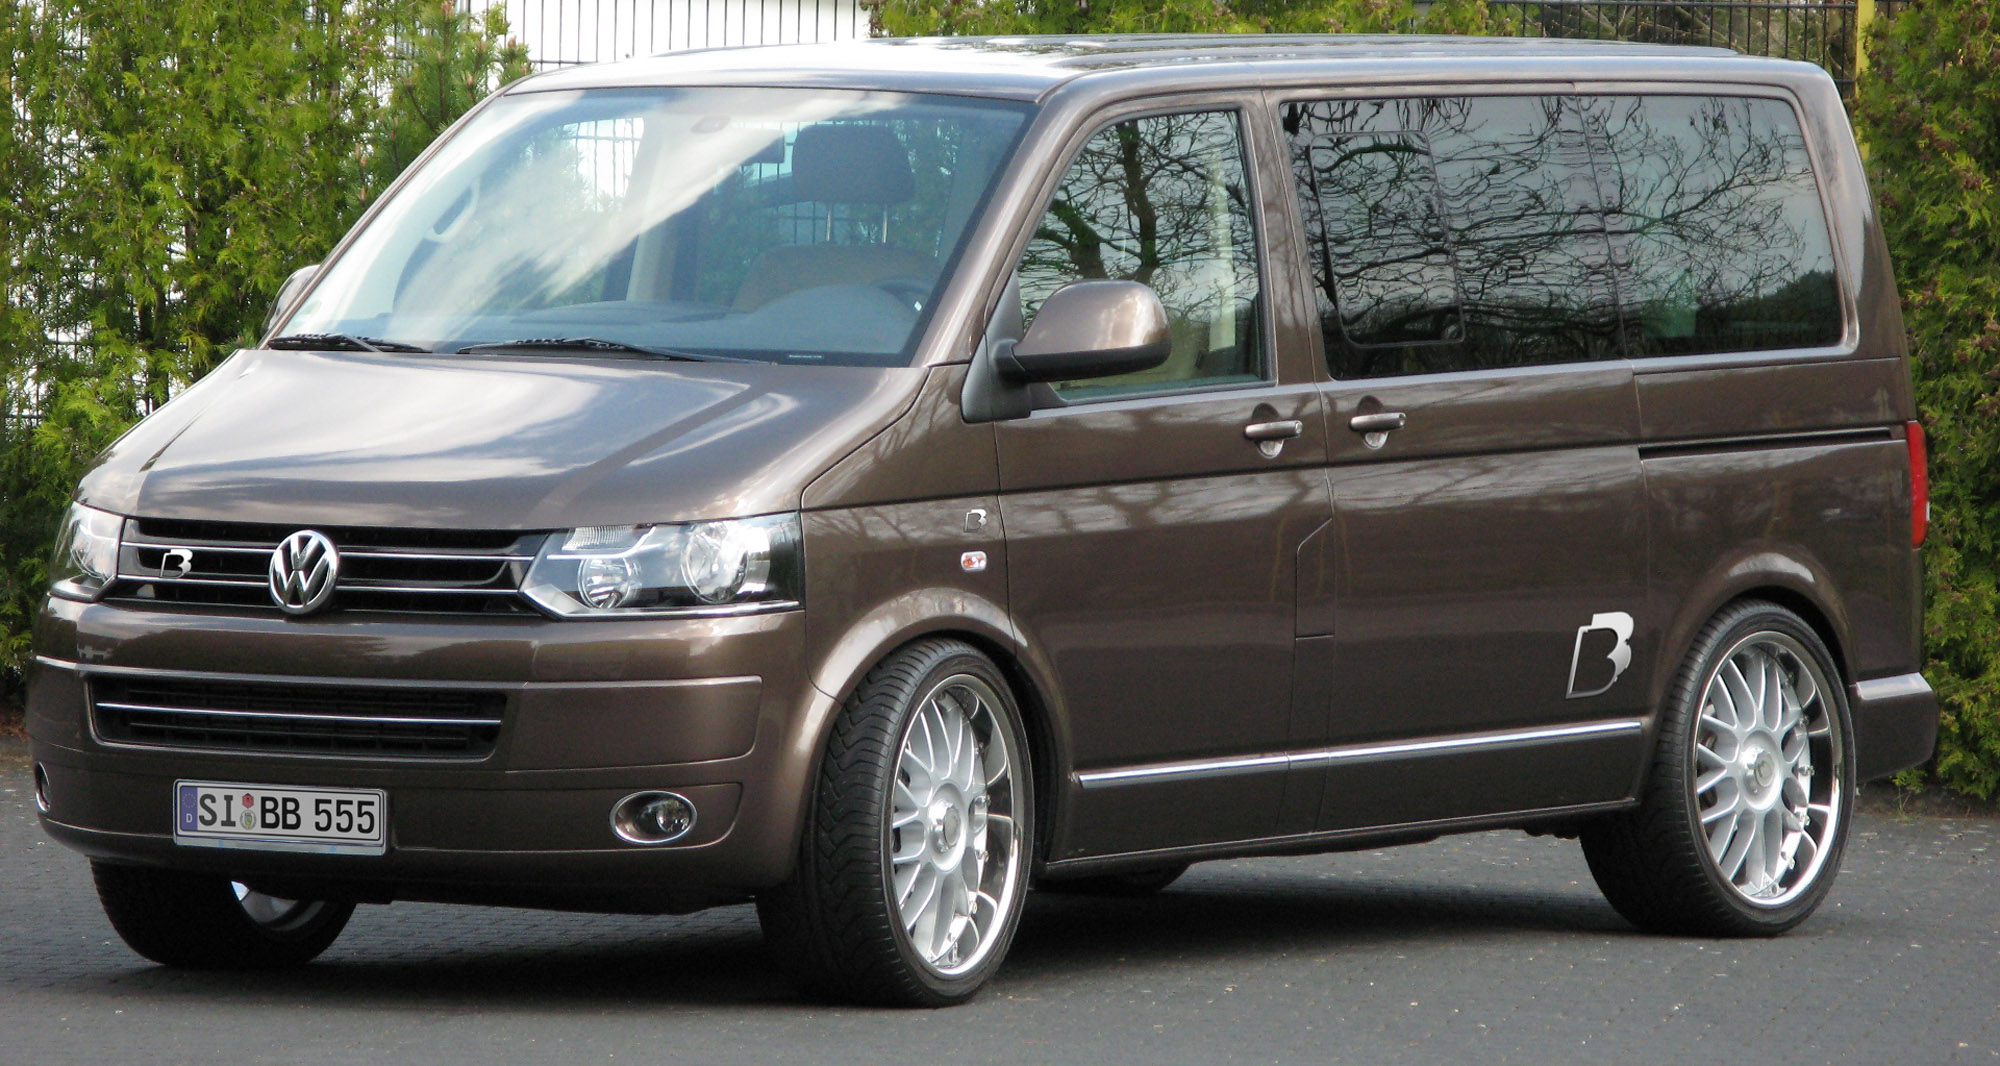 BampB Reveals Power Program For The VW Transporter T5